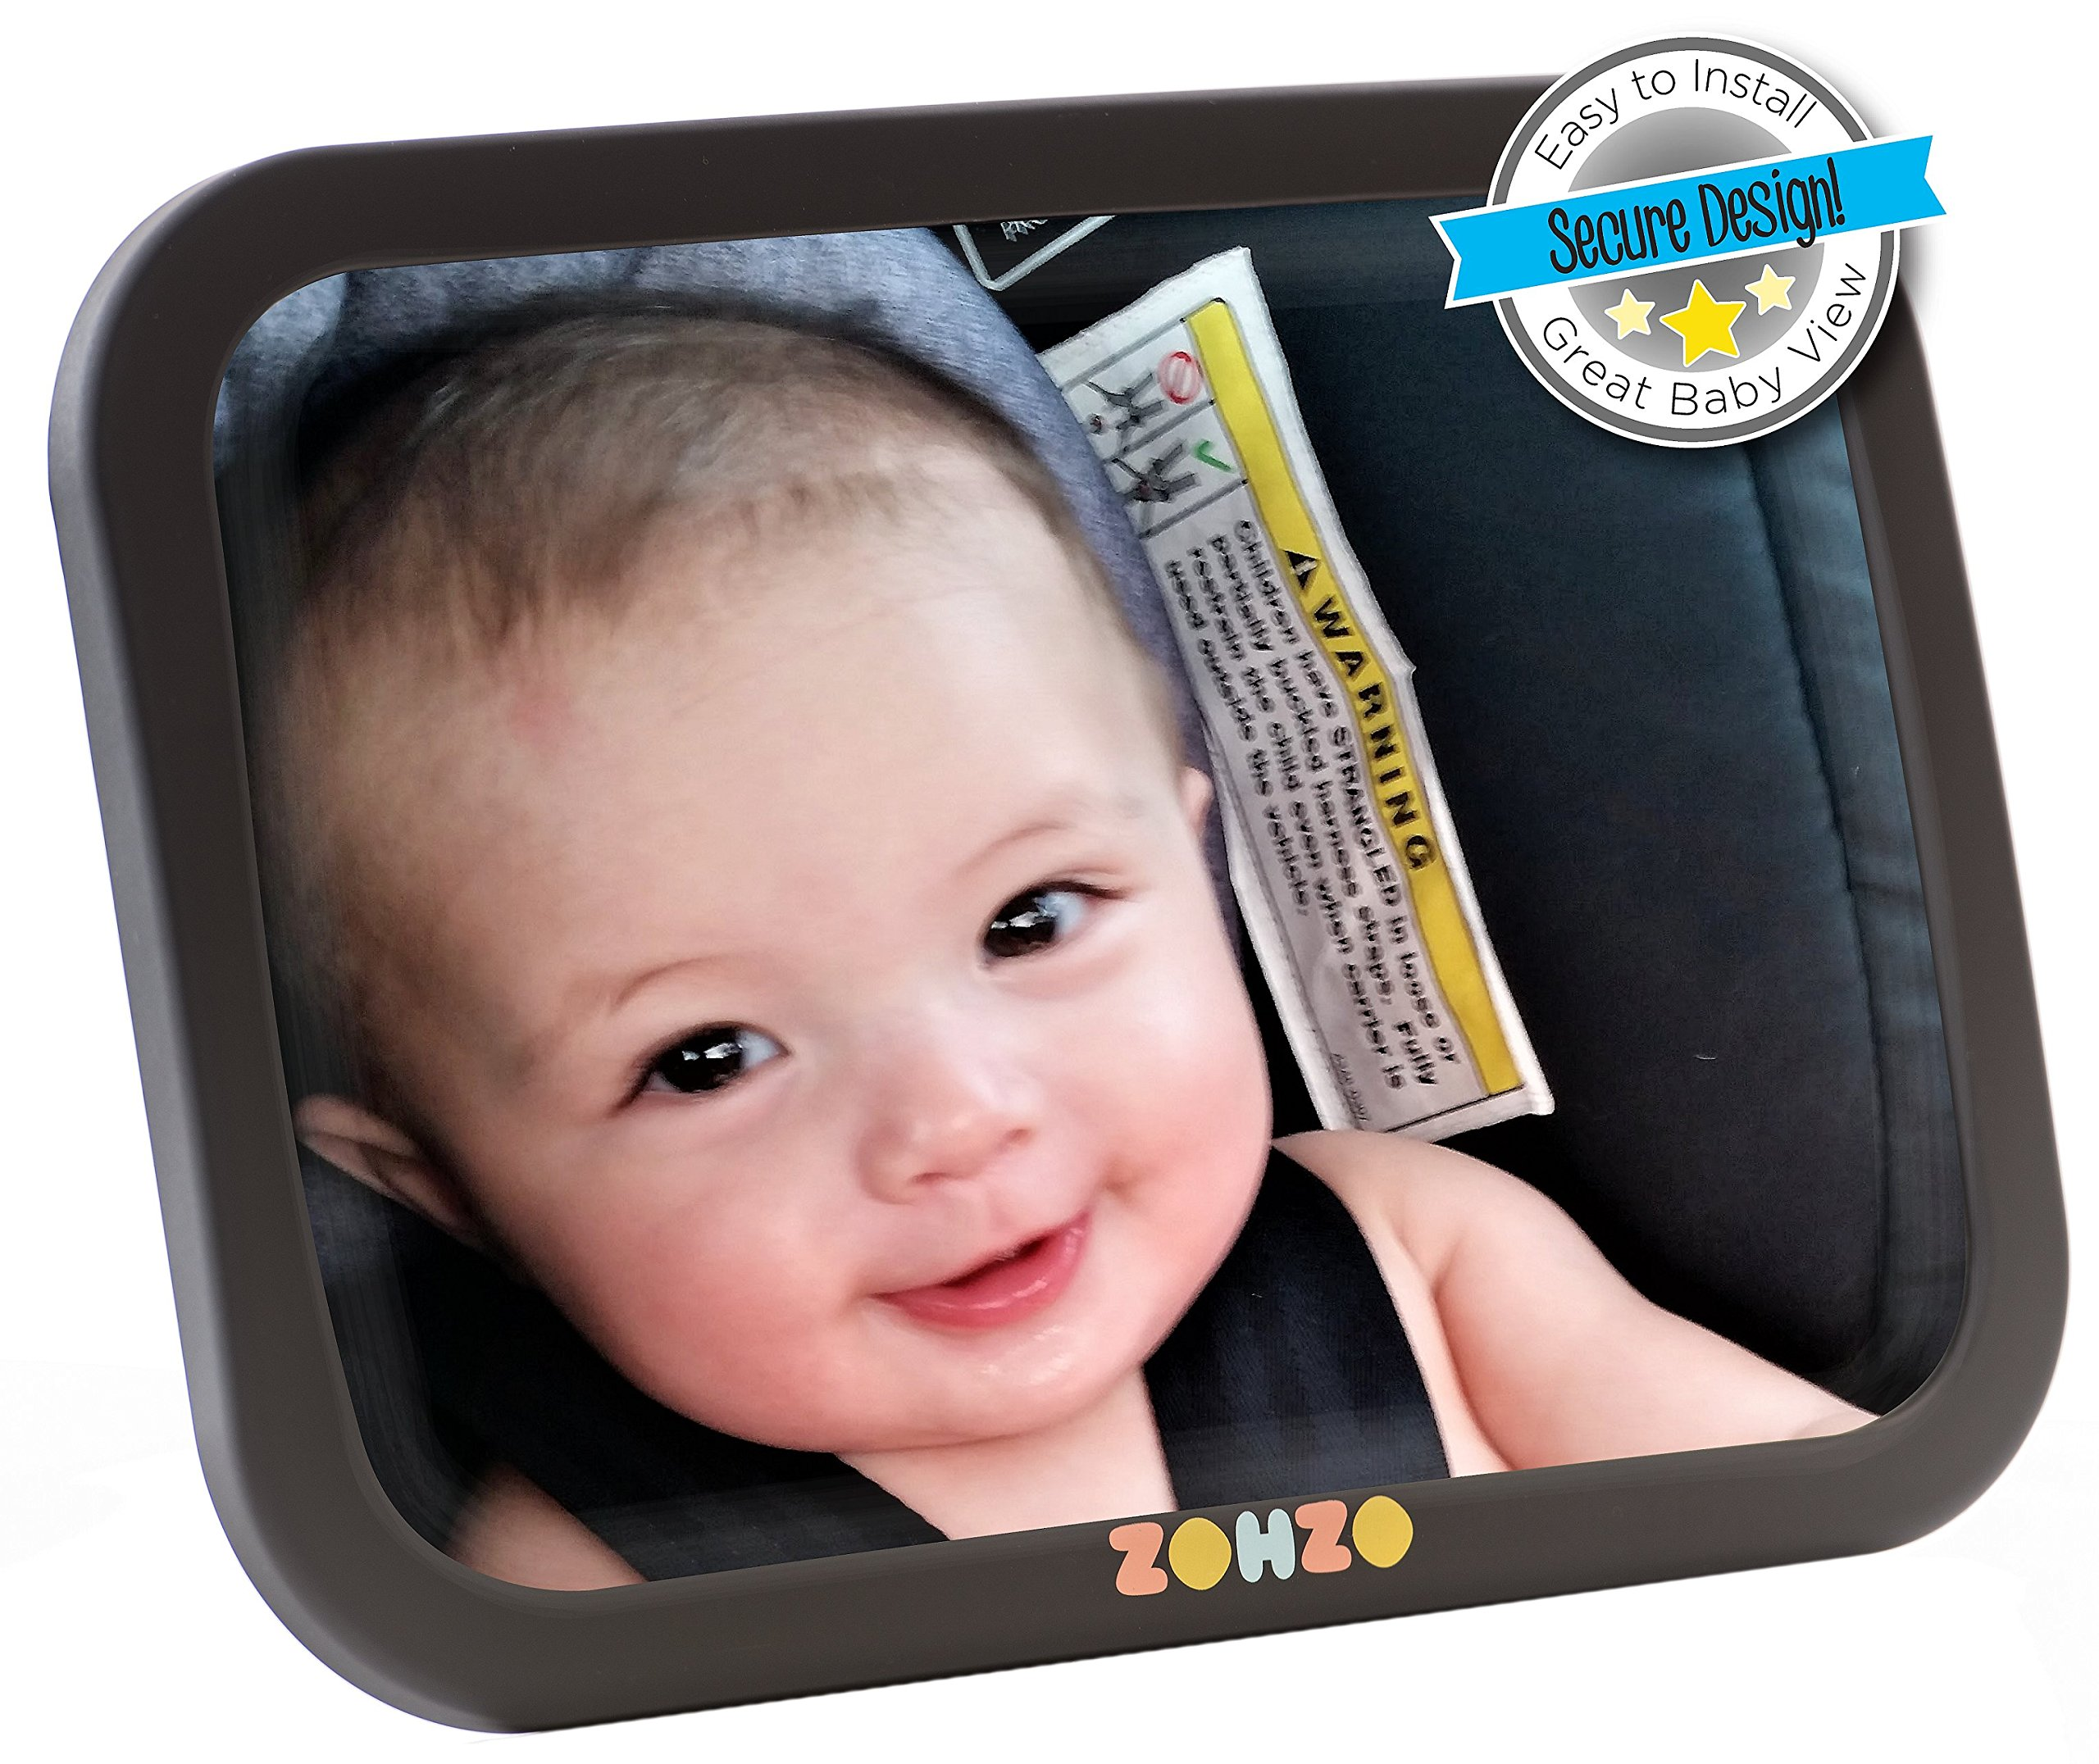 Baby Car Mirror for Back Seat | View Rear Facing Infant in Backseat | Securely Fasten With Double Strap | Pivot Joint to Easily Adjust to Desired Viewing Angle ... by Zohzo